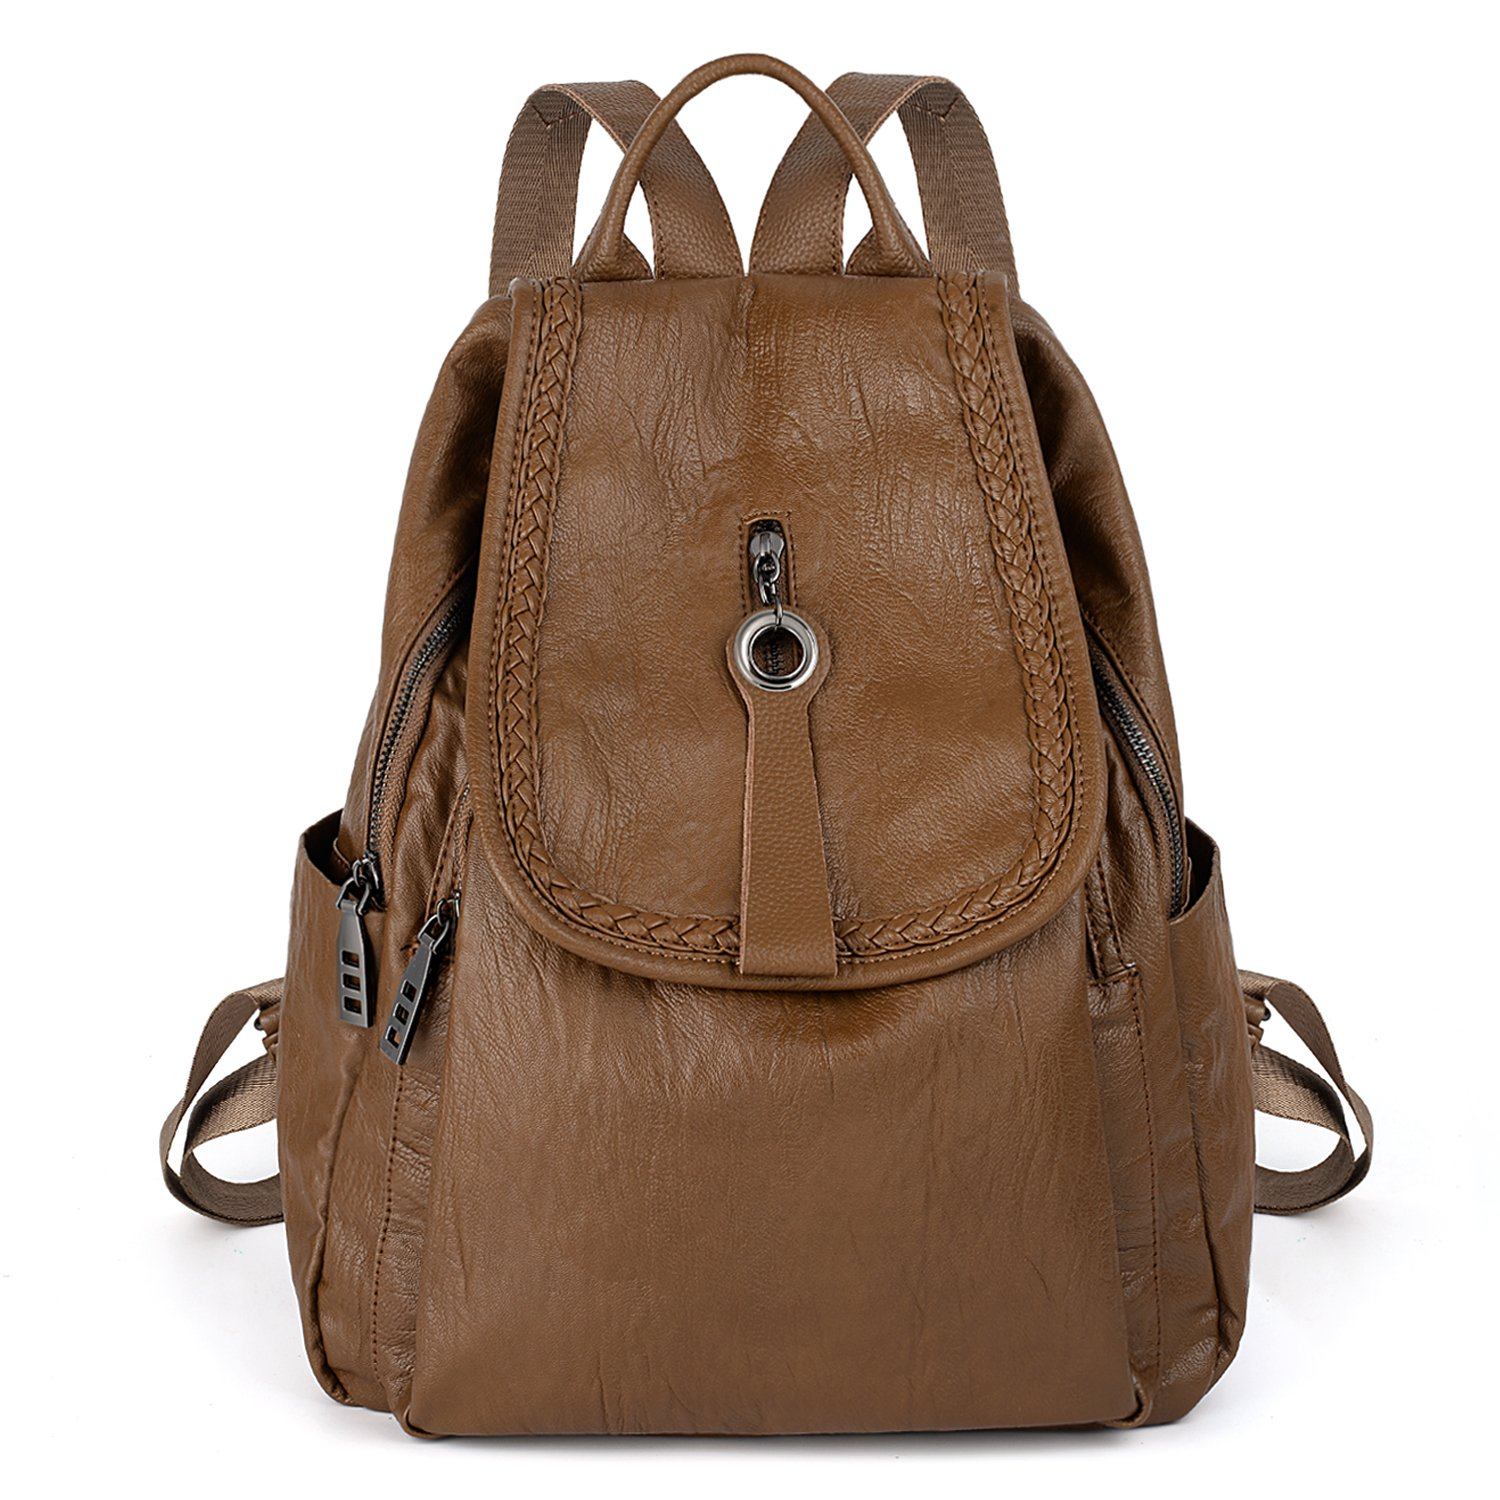 UTO Women Backpack Purse PU Washed Leather Zipper Pockets Ladies Flapover Rucksack Shoulder Bag Brown